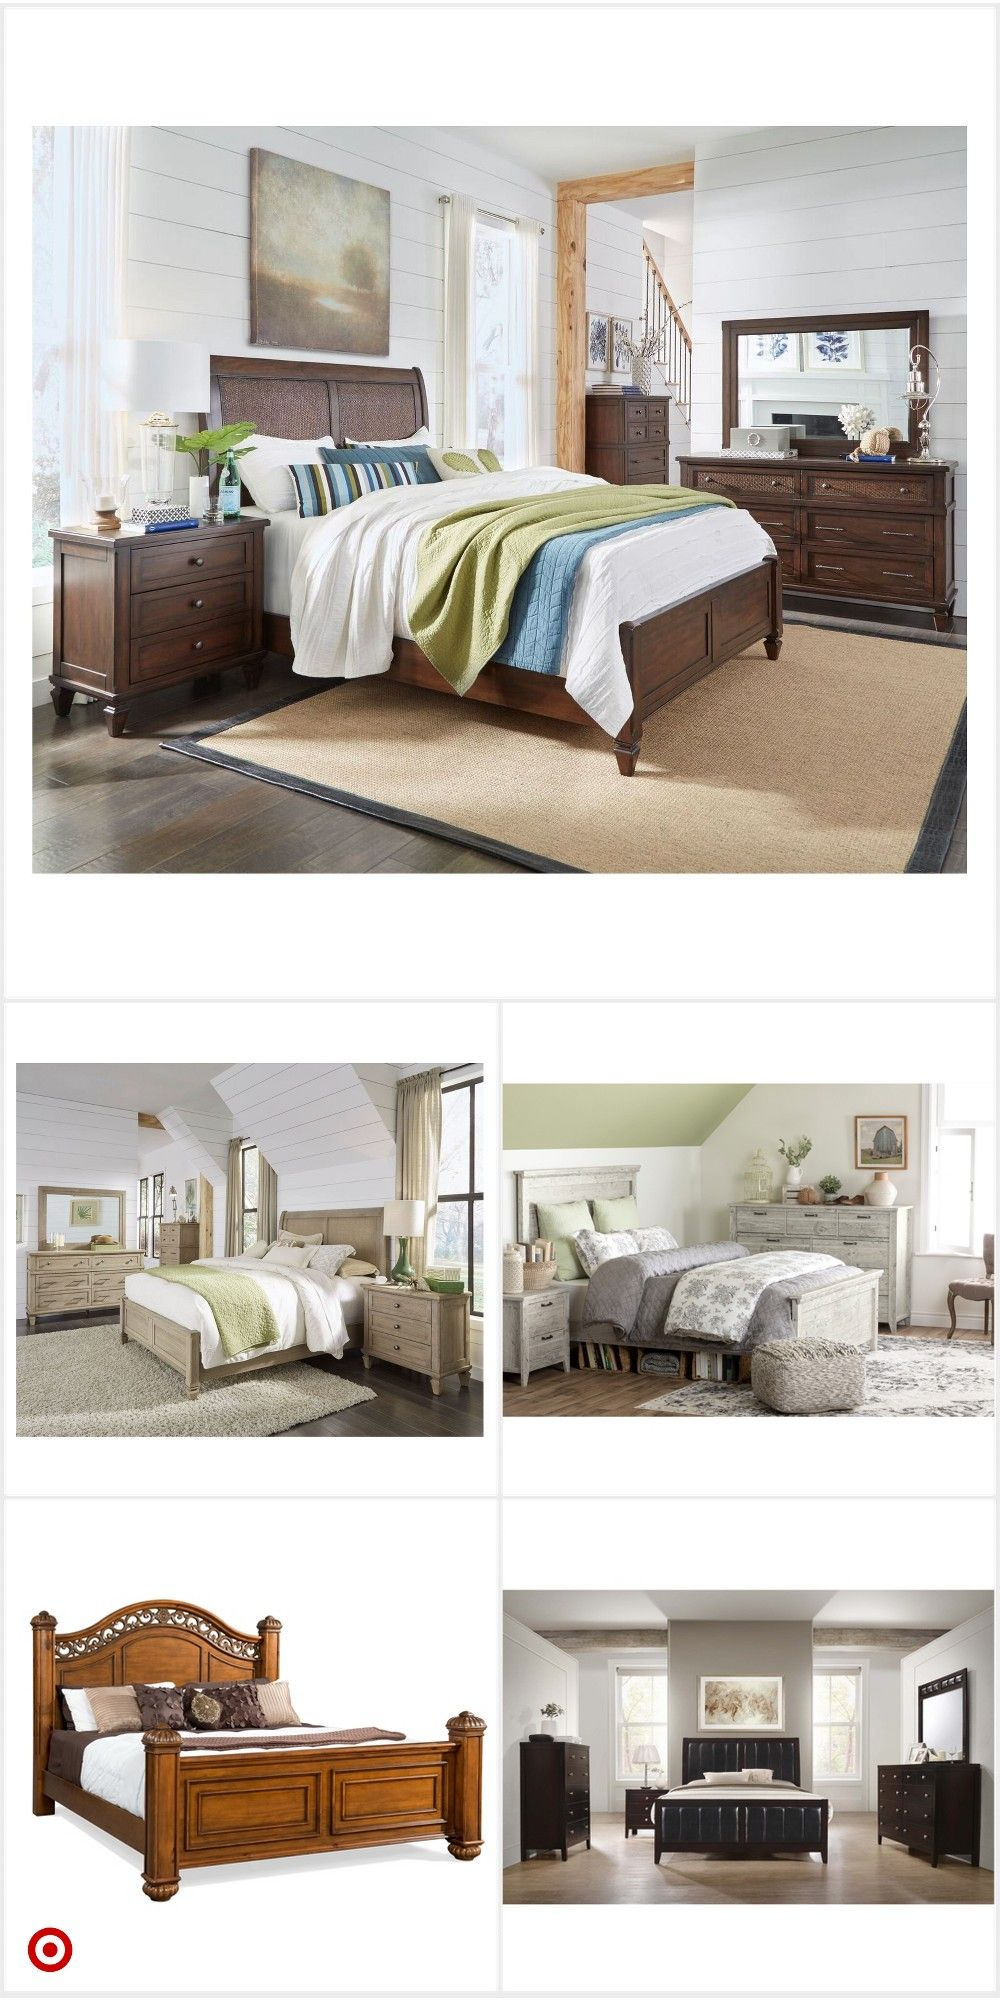 Shop Target For Panel Bed You Will Love At Great Low Prices Free Shipping On Orders Of 35 Or Free Same Day Pick Up In Sto Panel Bed Beds Online Home Decor